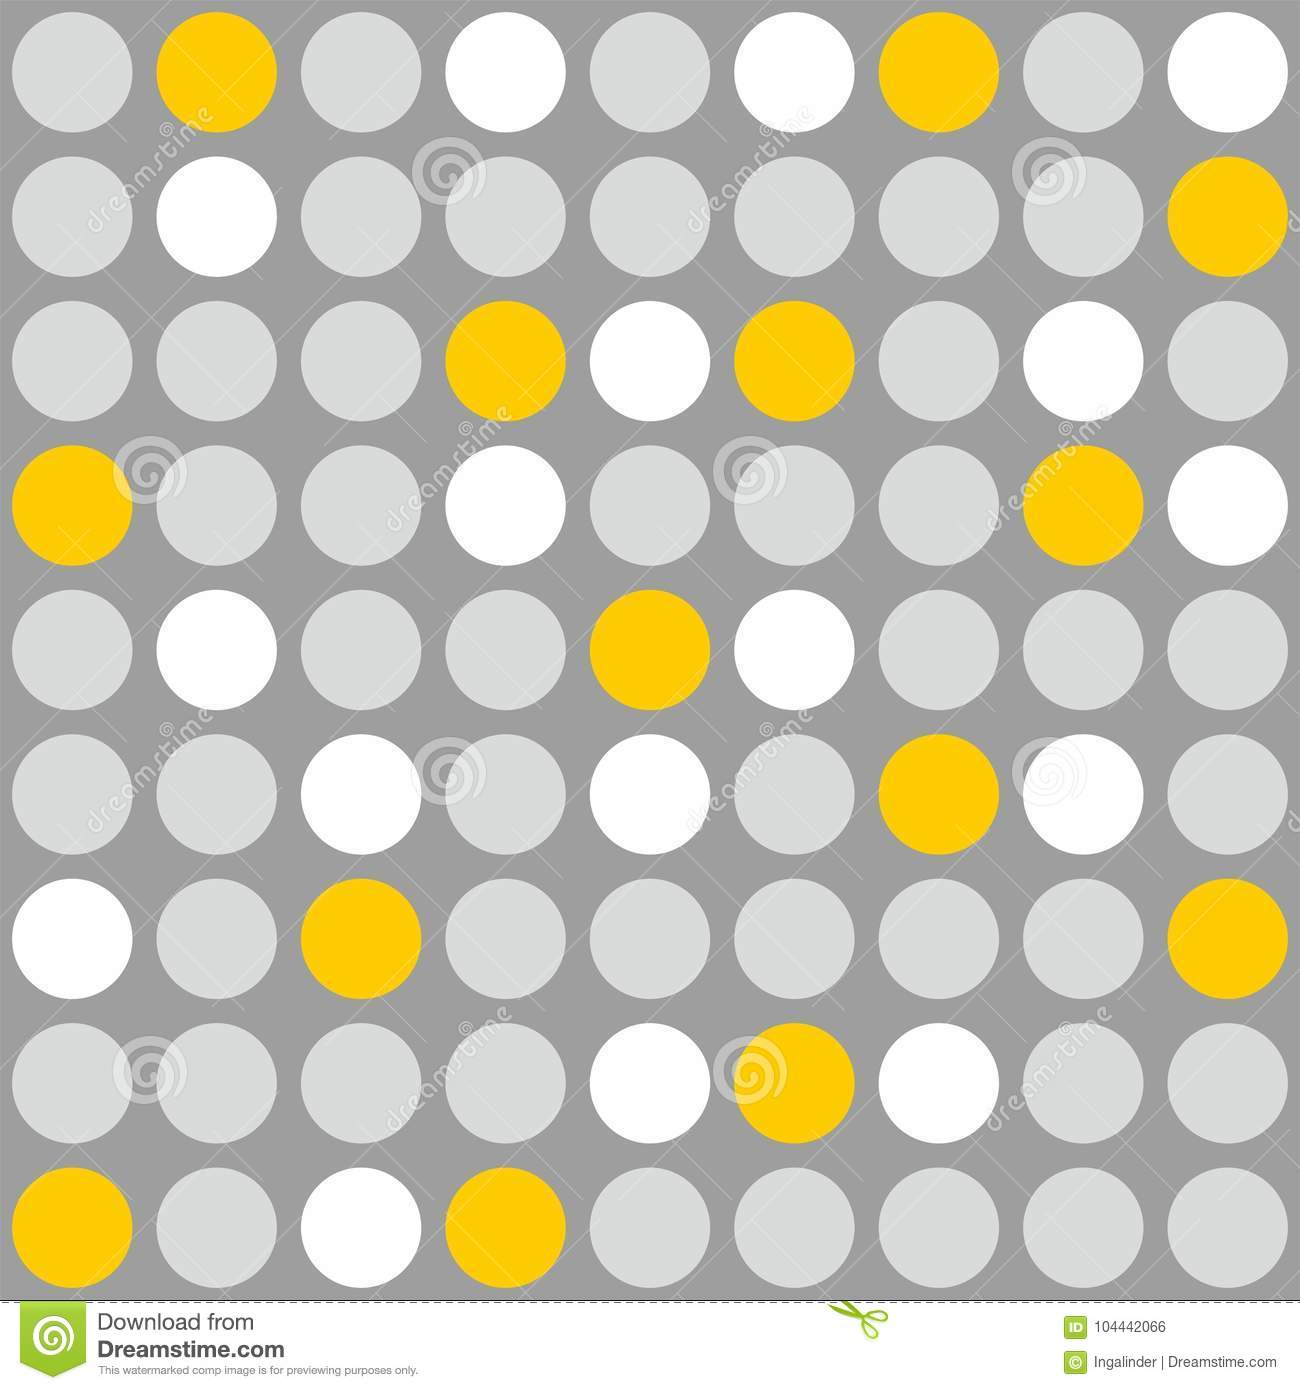 Tile Vector Pattern With Grey, White And Yellow Polka Dots ...